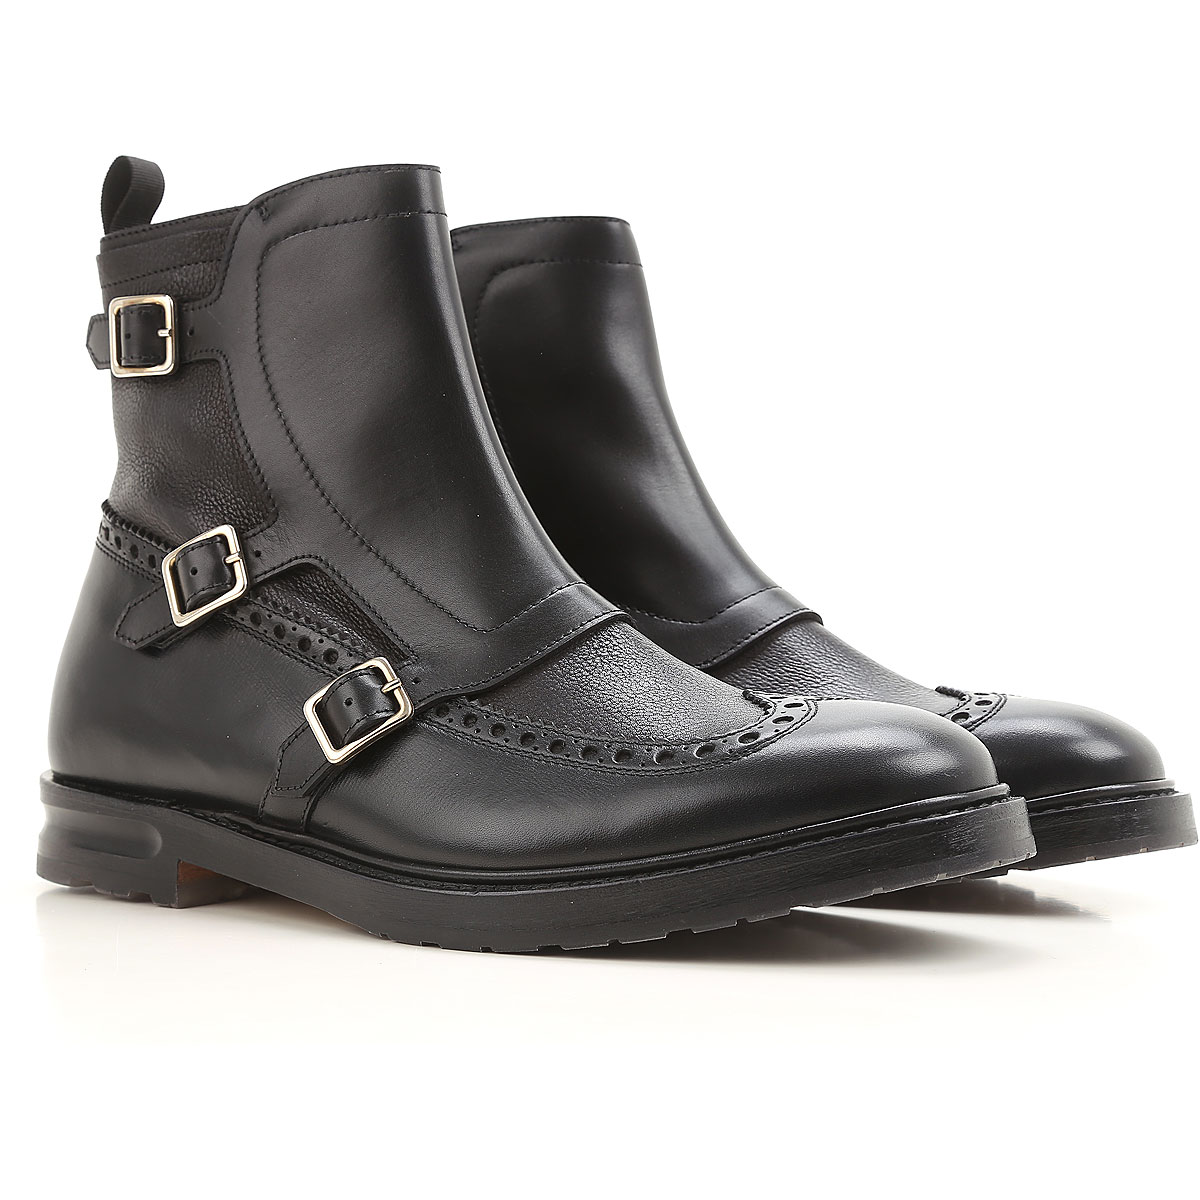 Alexander McQueen Chelsea Boots for Men in Outlet Black USA - GOOFASH